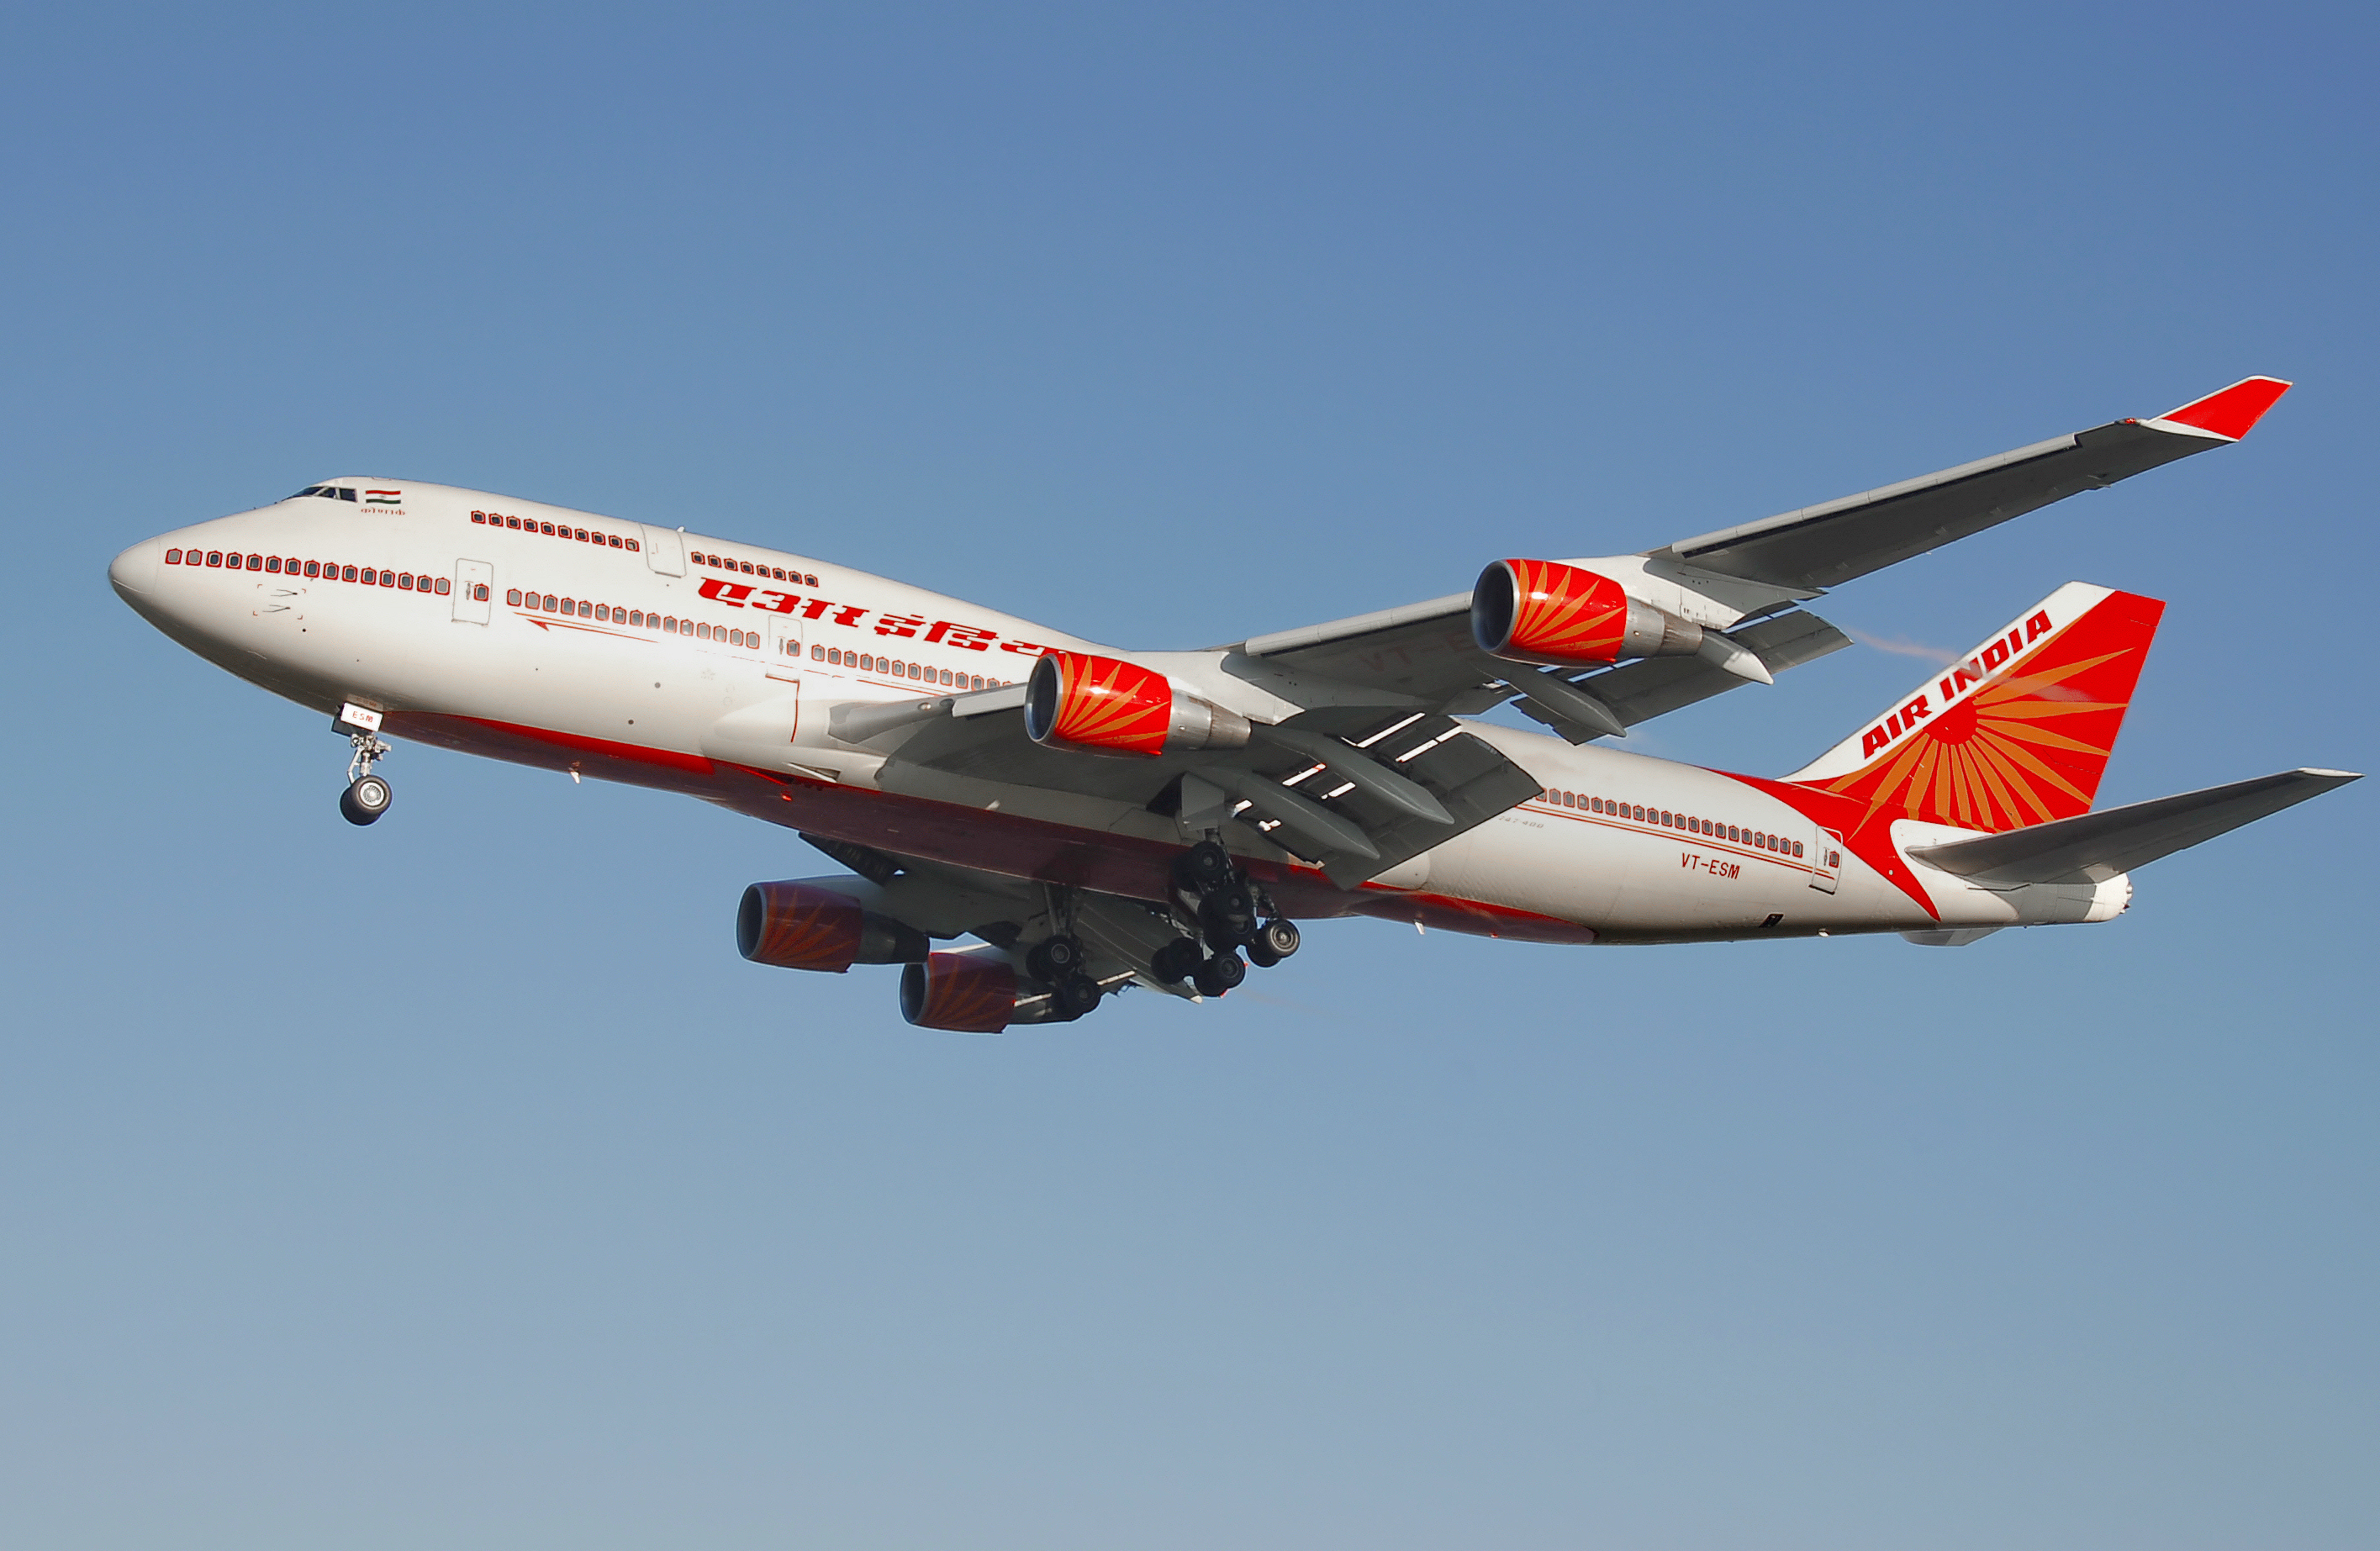 Air India Diverts a Plane and Saves a Life by Delivering a Heart for Transplant